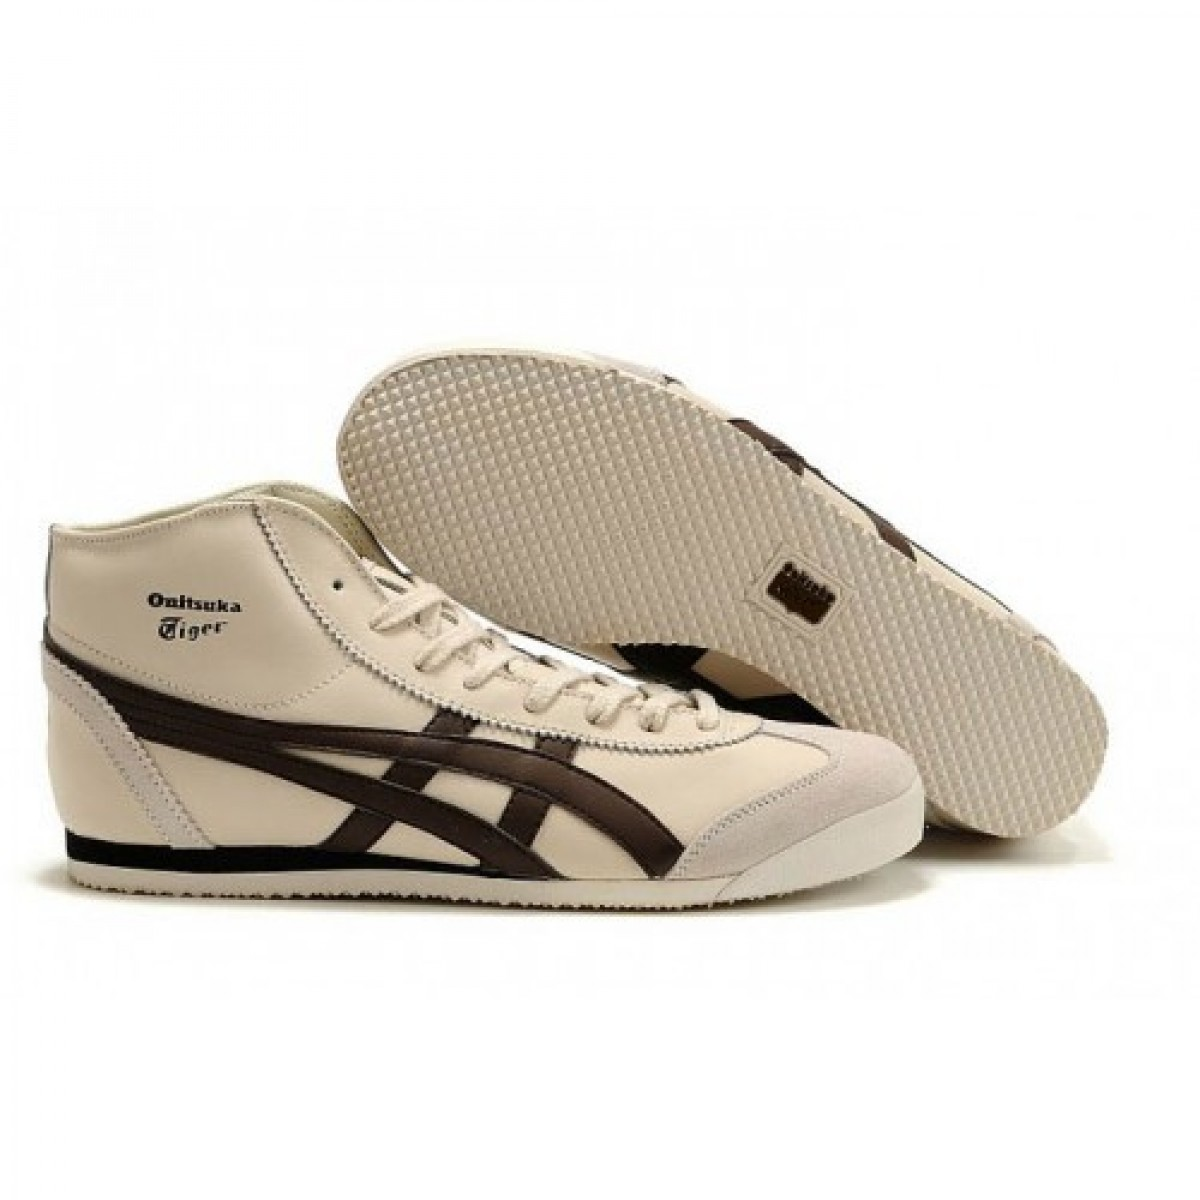 TC2636 Soldes Asics Mexico 66 Mid Runner Chaussures Beige Brown Pour Femmes 05767768 Pas Cher